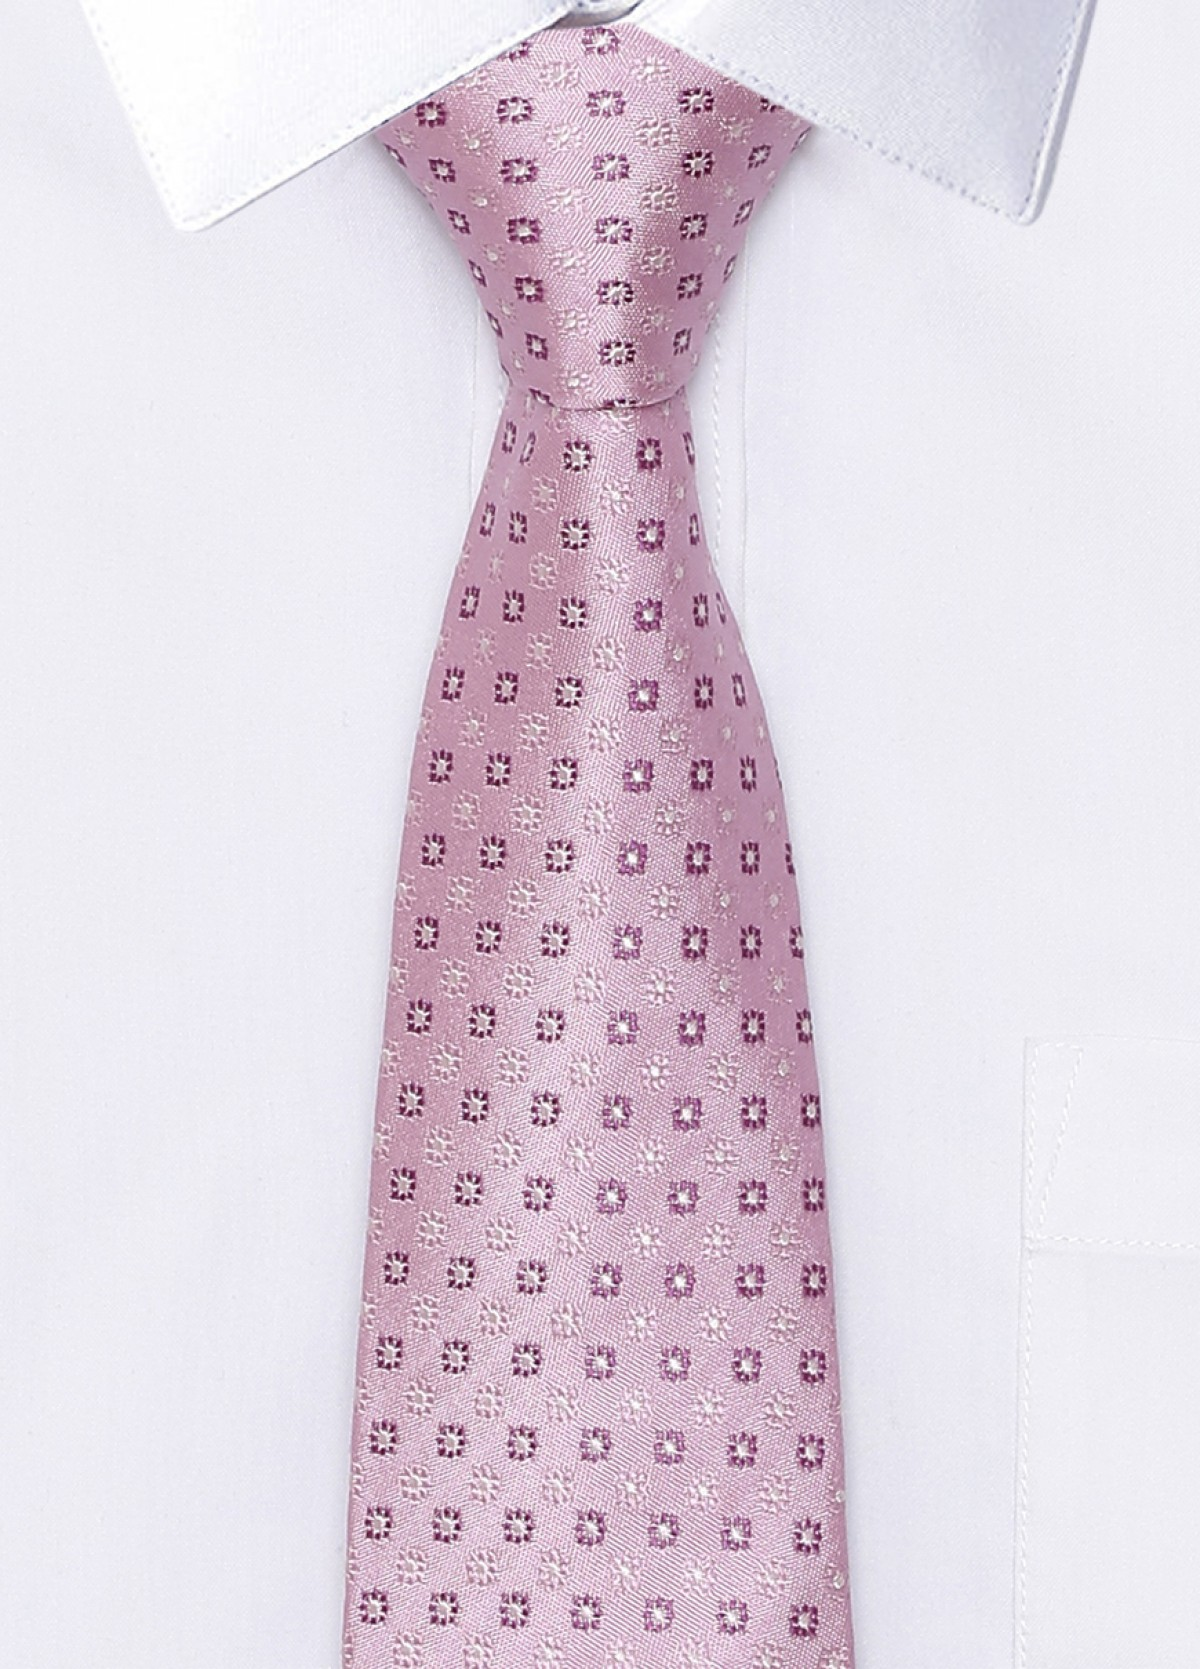 The Pink Formal Silk Stain Resistant